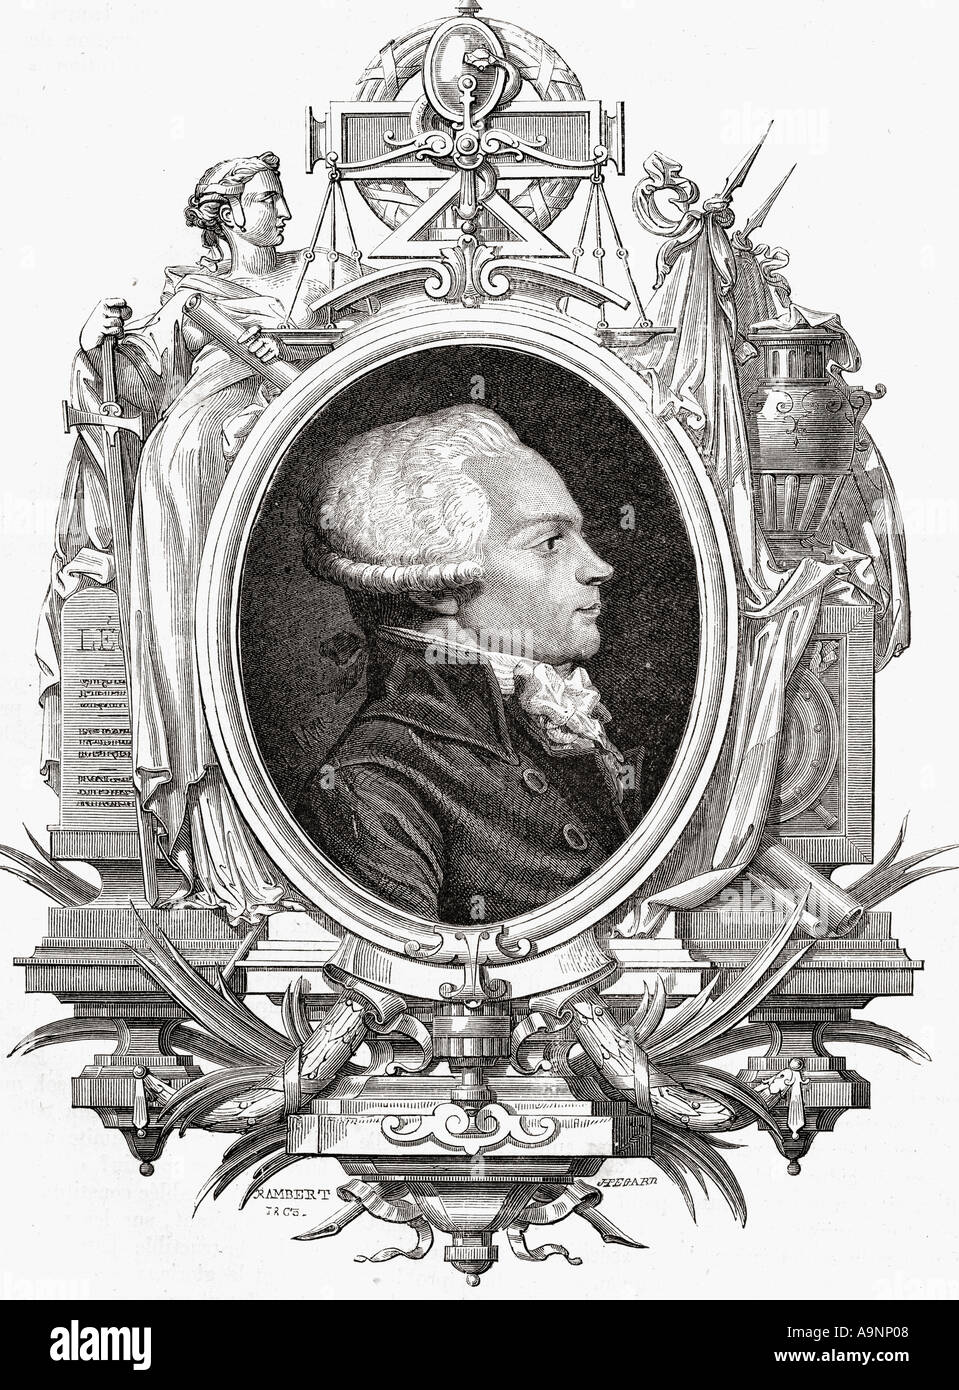 Robespierre Stock Photos and Images